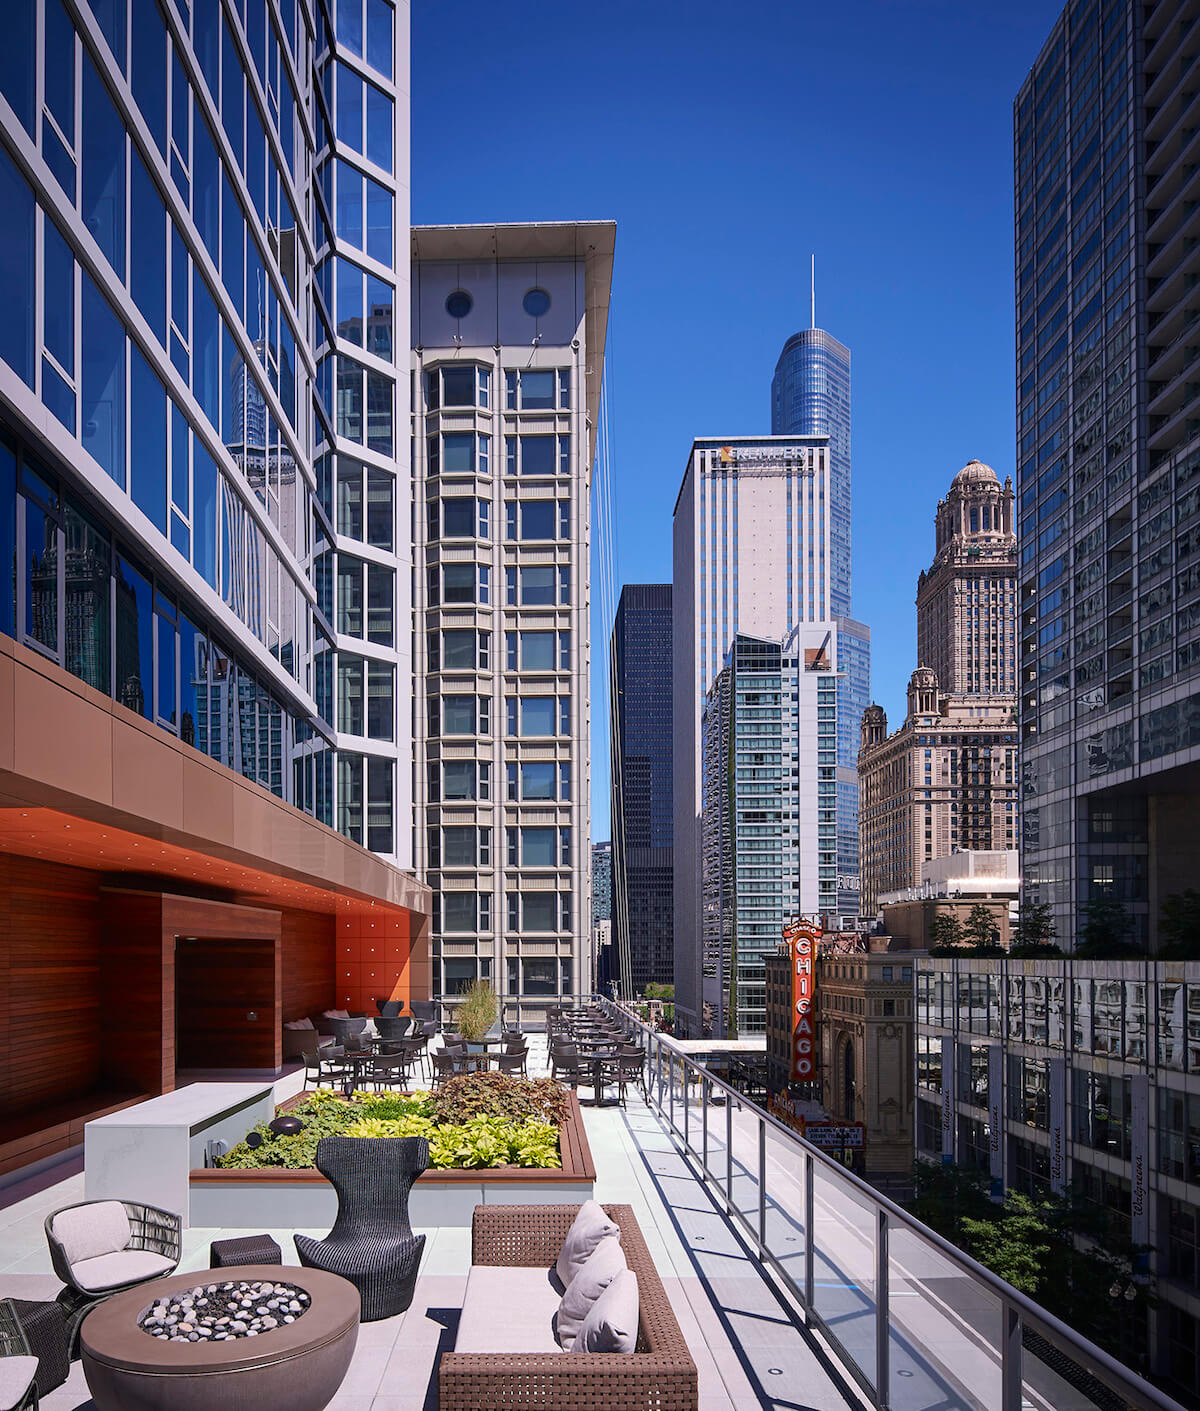 Best Website For Apartments: Chicago Luxury Apartments For Rent